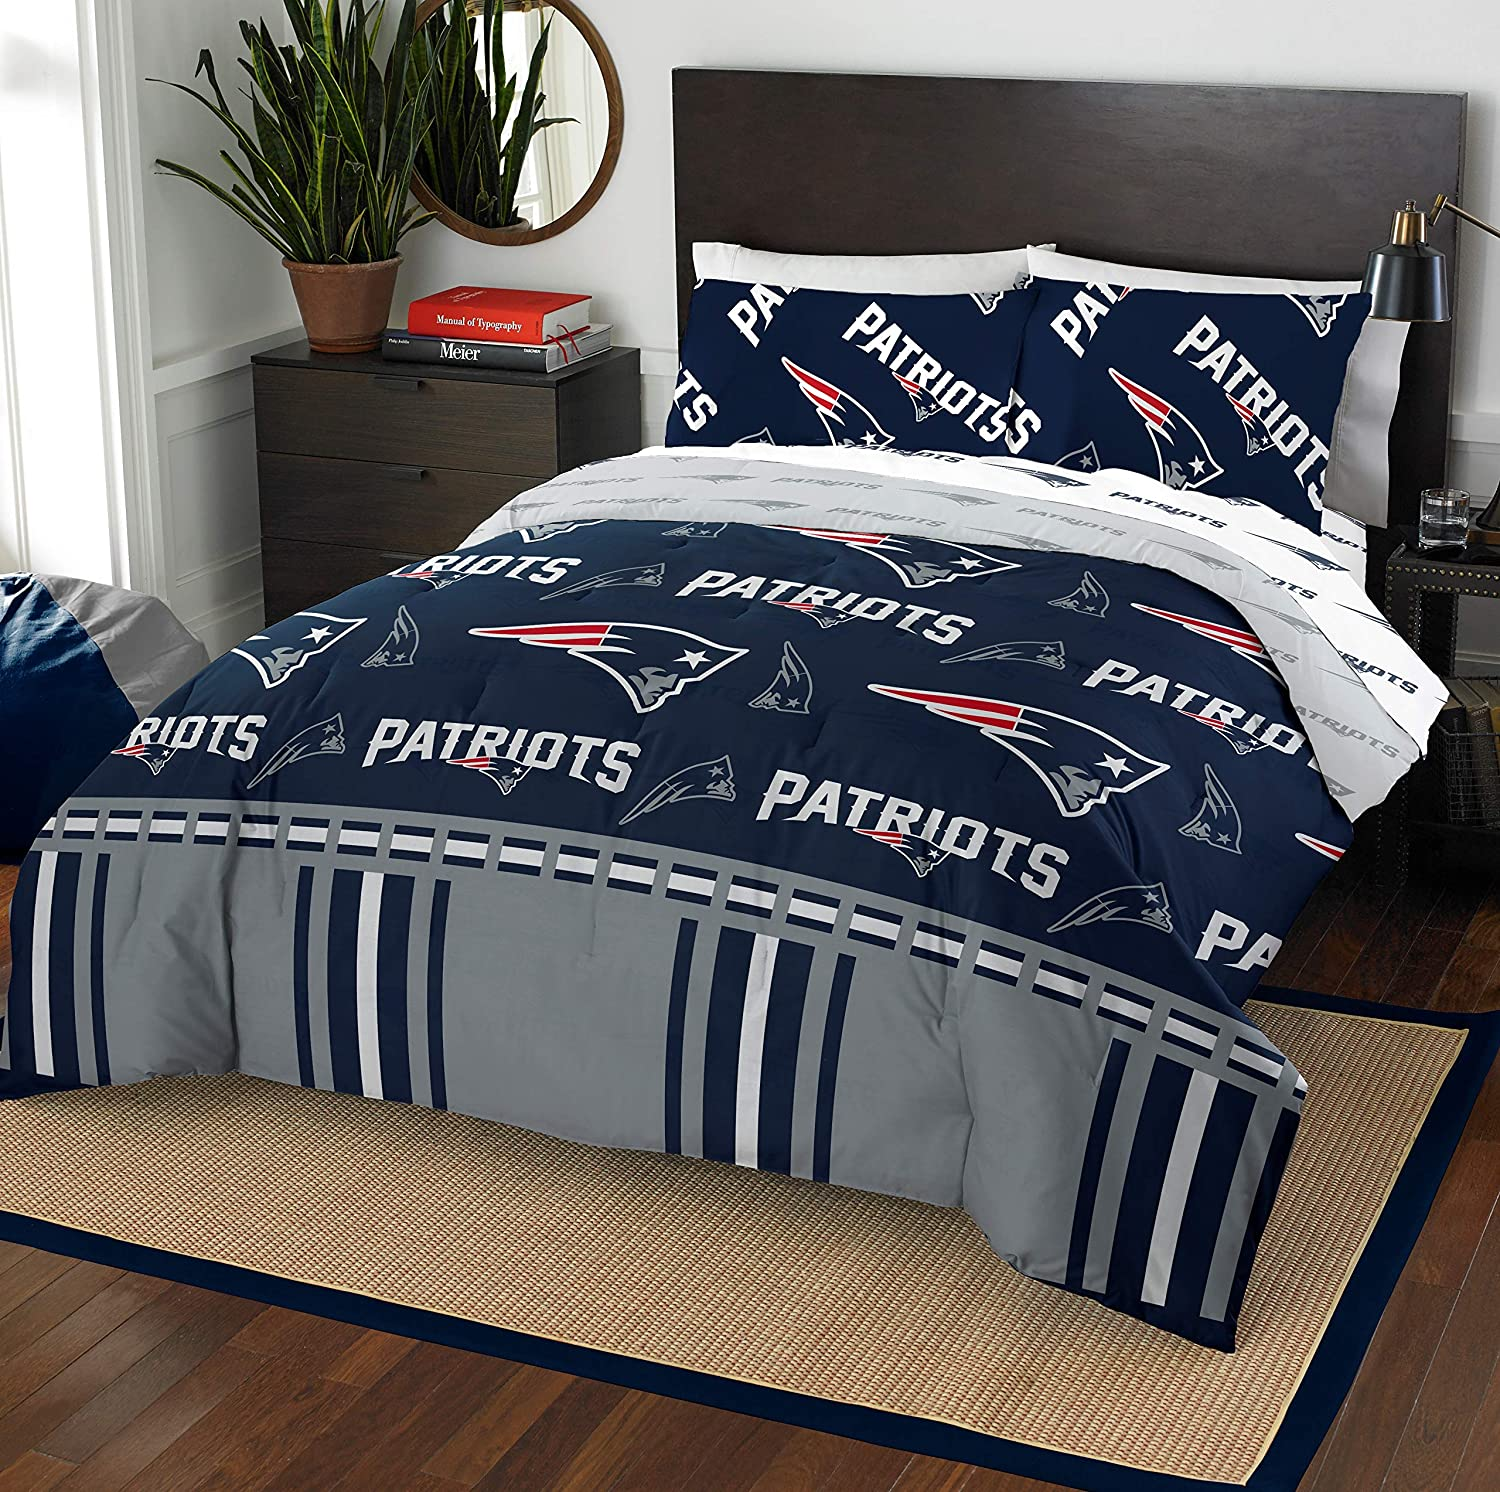 The Northwest Company NFL New England Patriots Full Bed in a Bag Complete Bedding Set #729445576